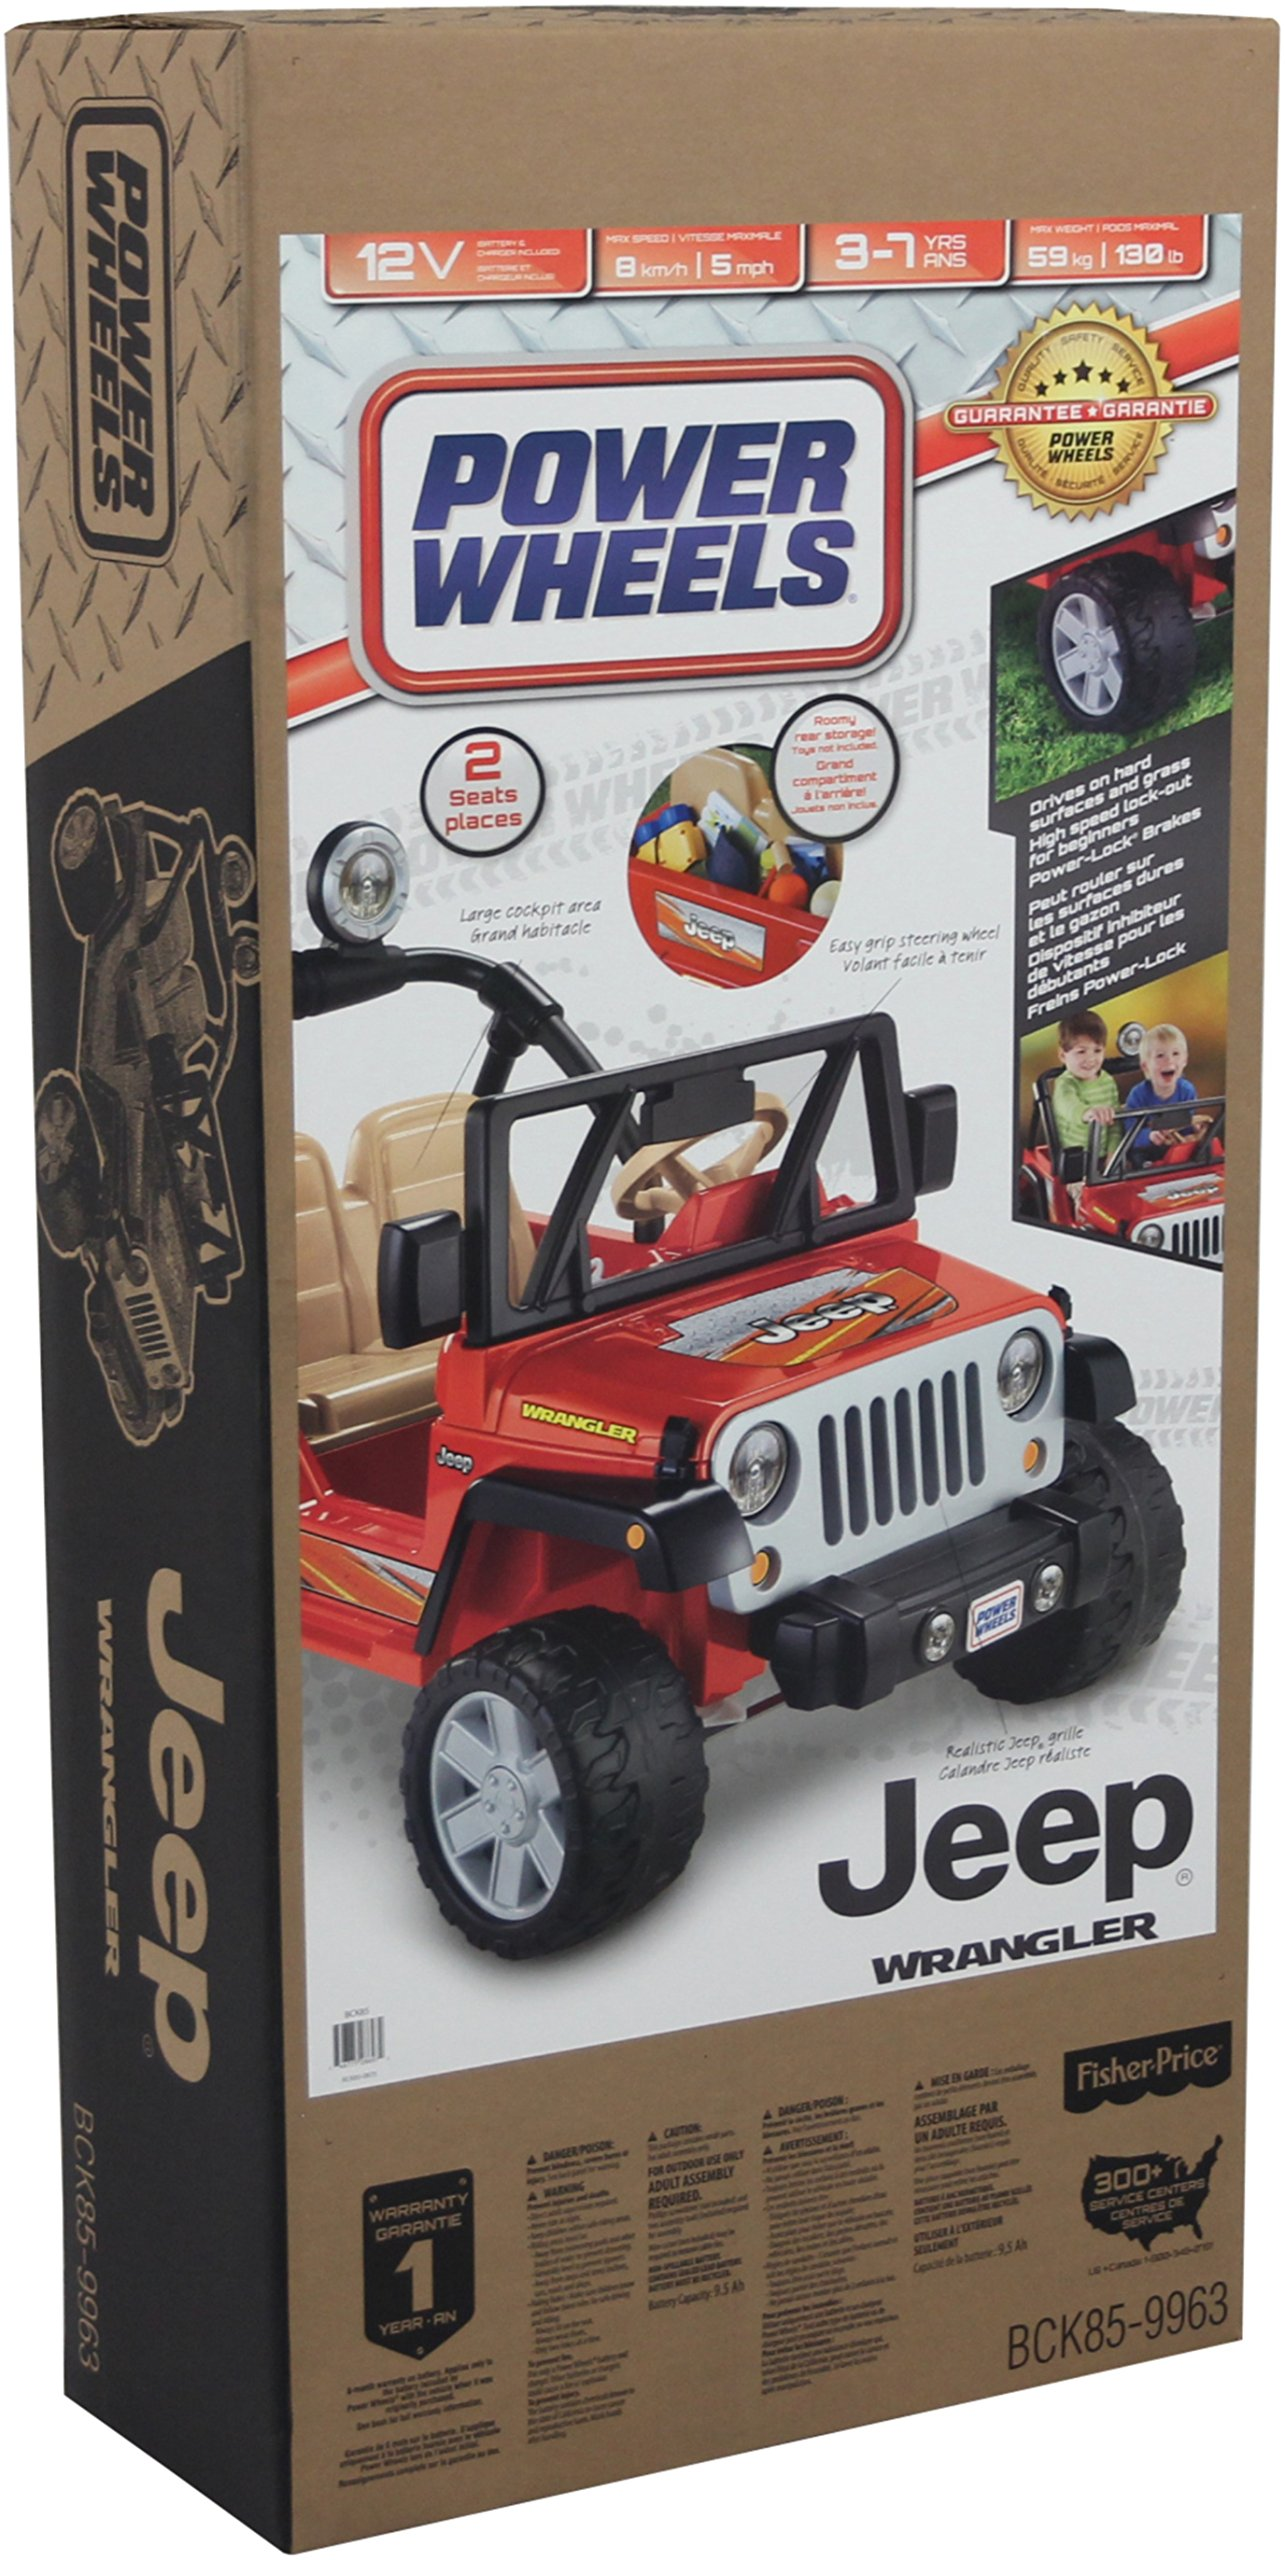 Power Wheels Jeep Wrangler, Red by Fisher-Price (Image #11)